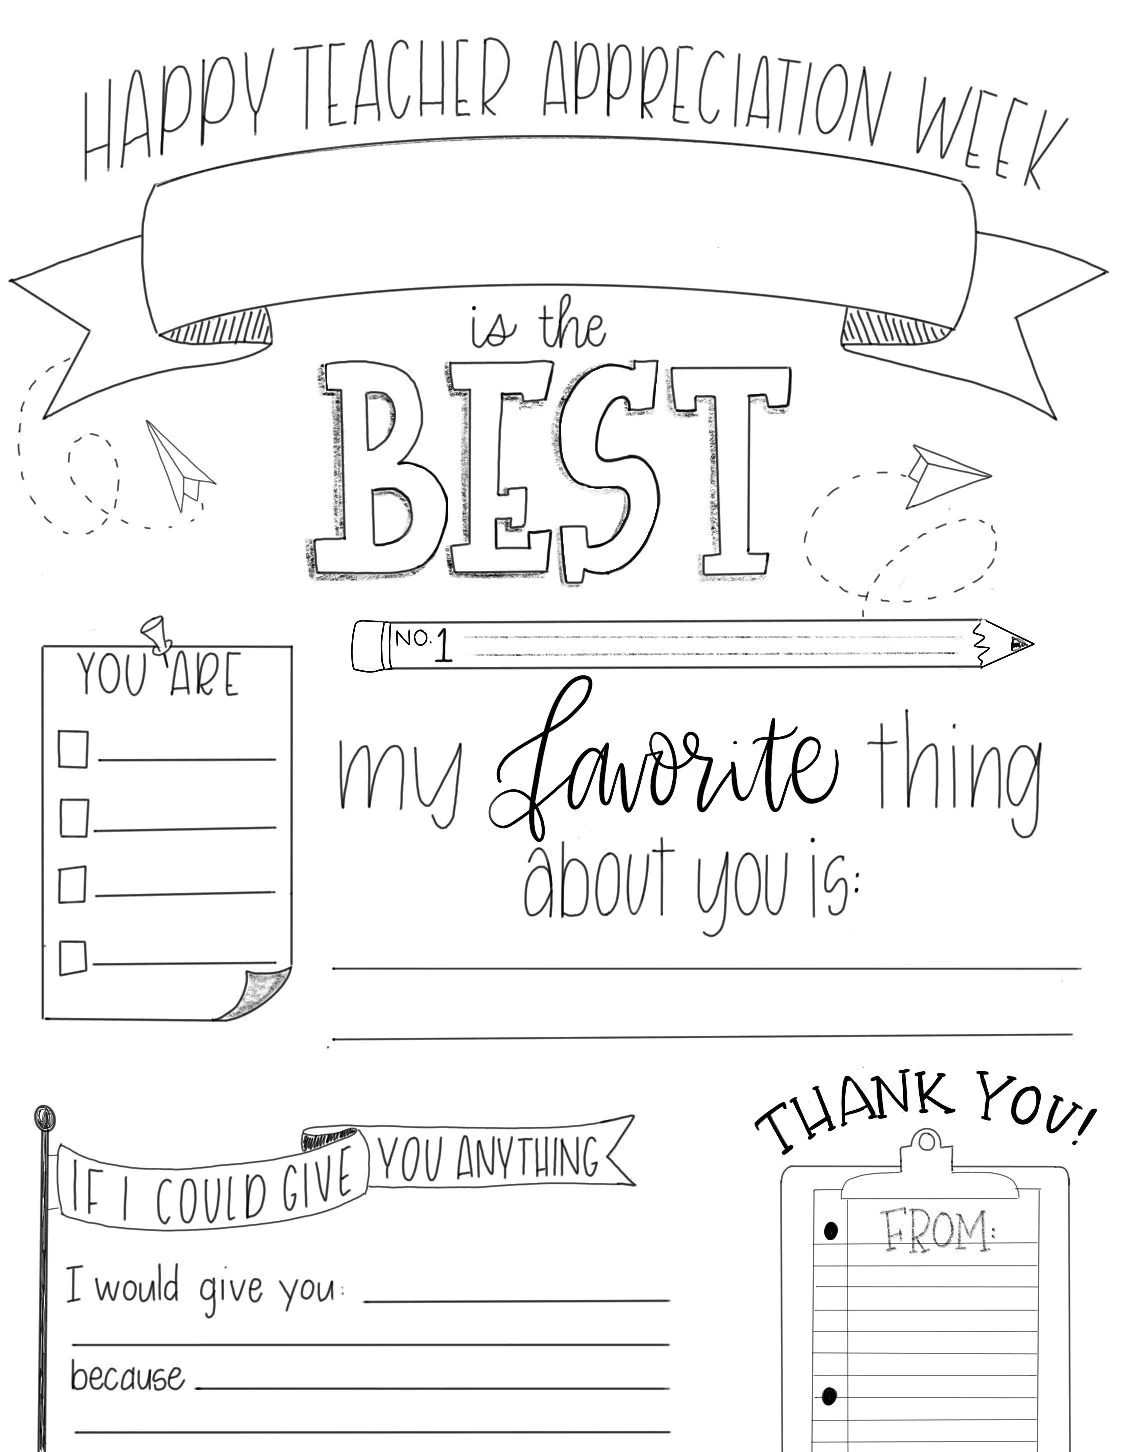 Teacher Appreciation Week Customizable Download Teacher